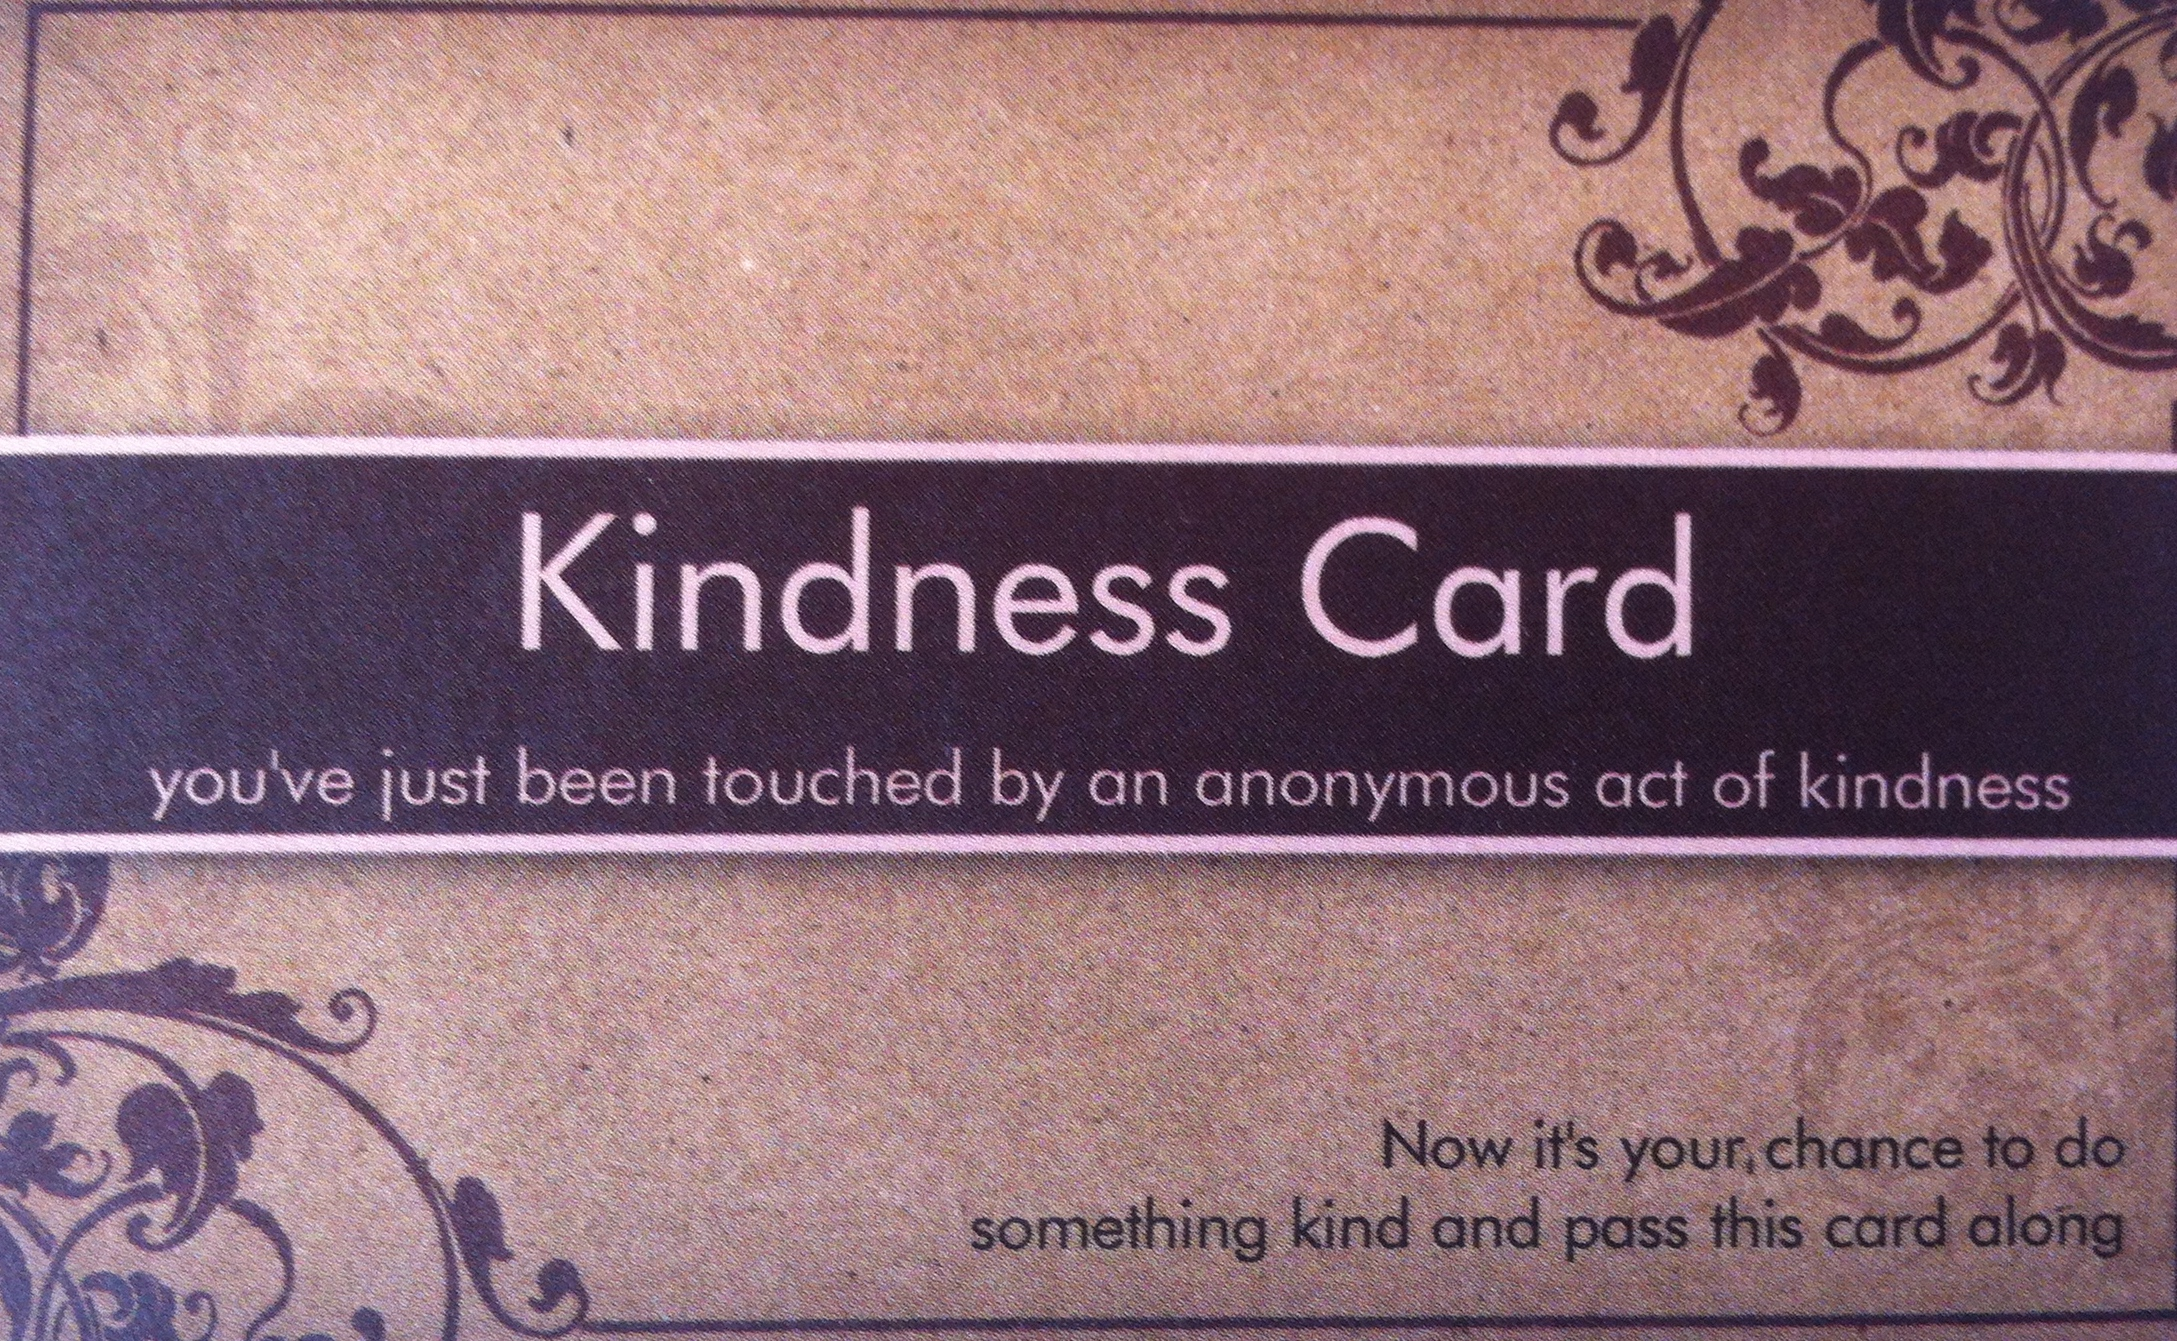 Day 51: Kindness messages